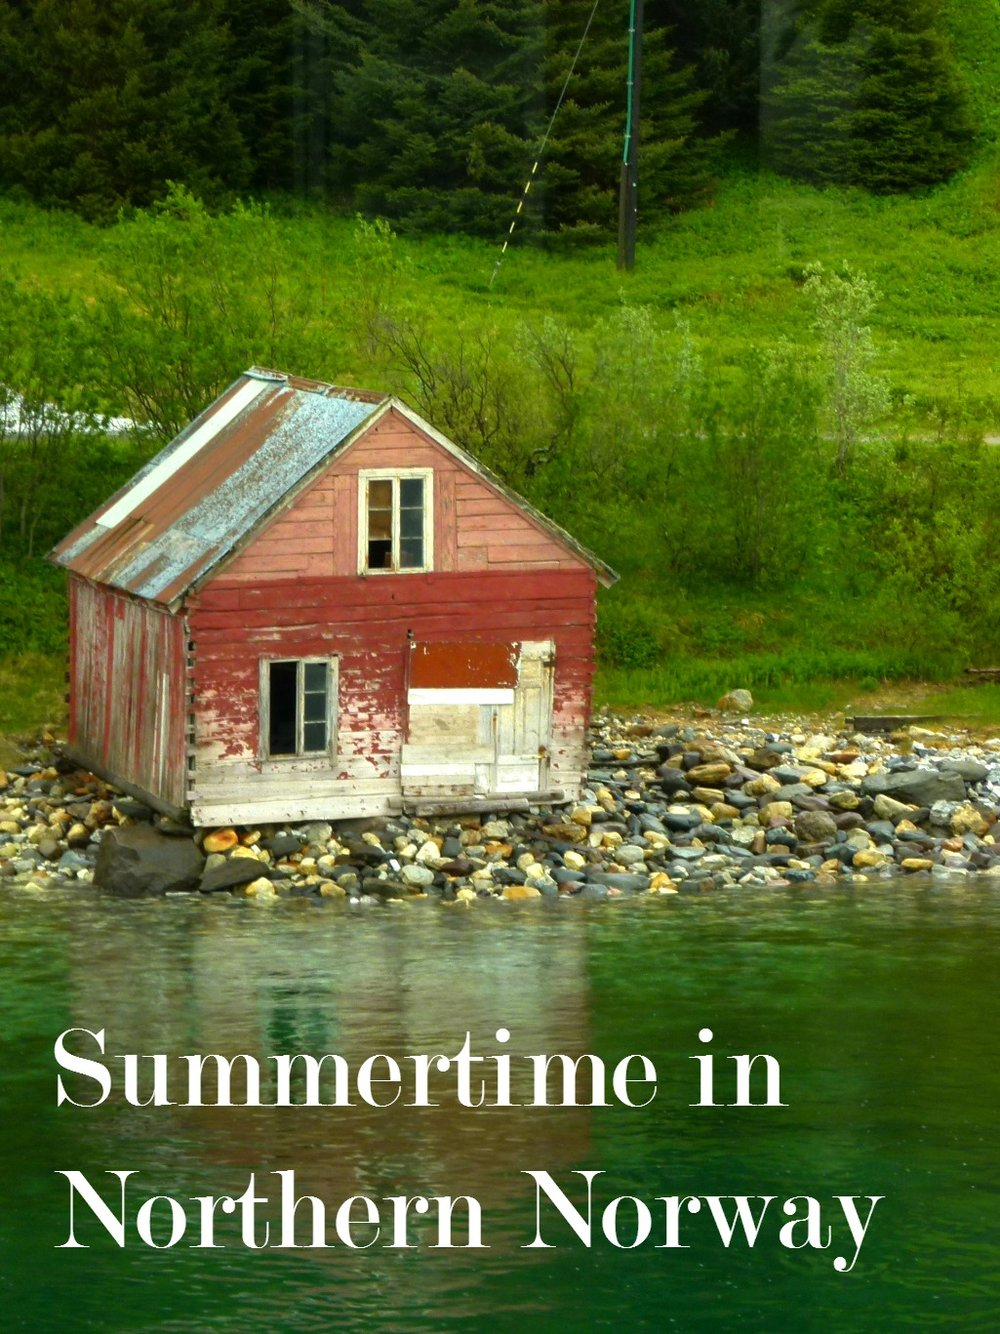 Summertime in Northern Norway - what's it really like?